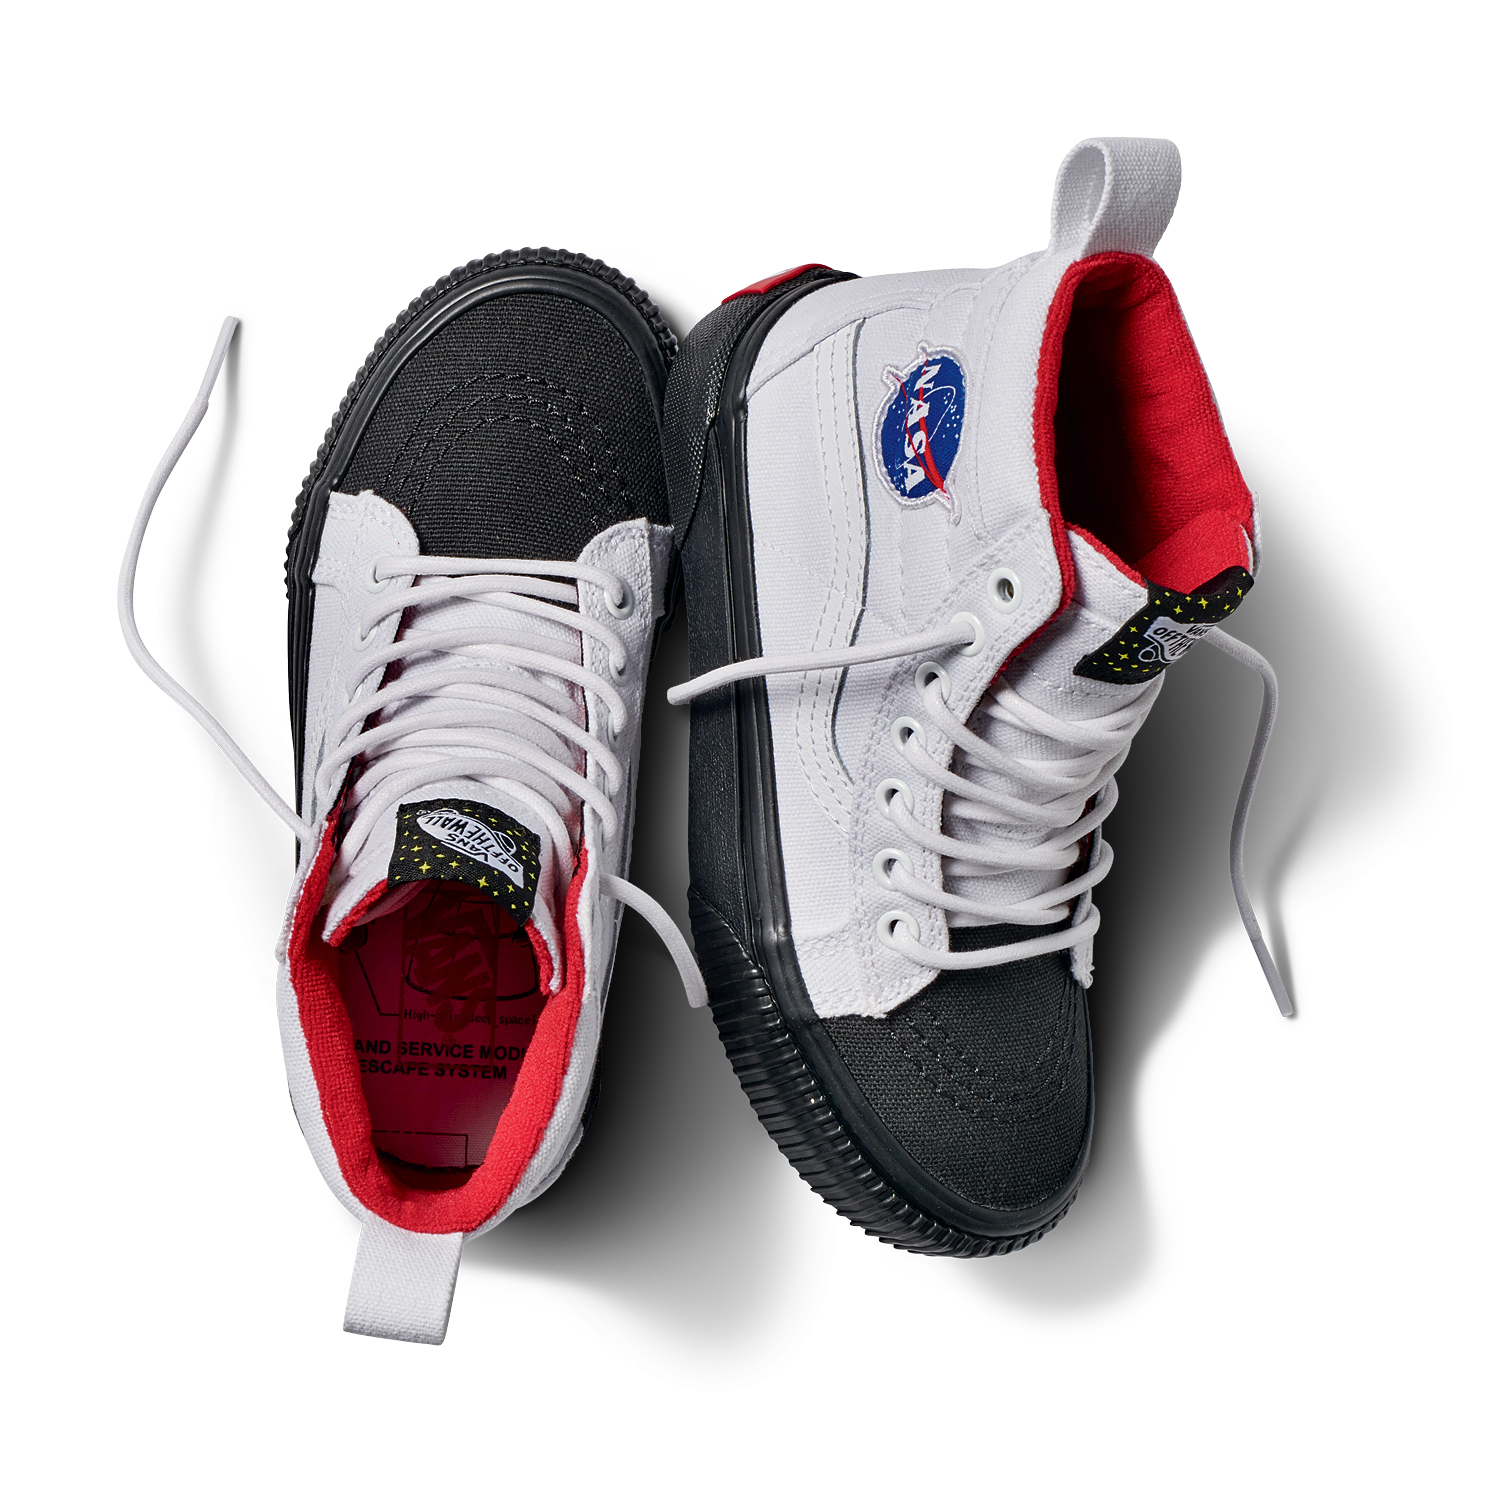 HO18_Vans_SpaceVoyager_DigitalPack_StandardProductPhoto_1500x1500_7.jpg